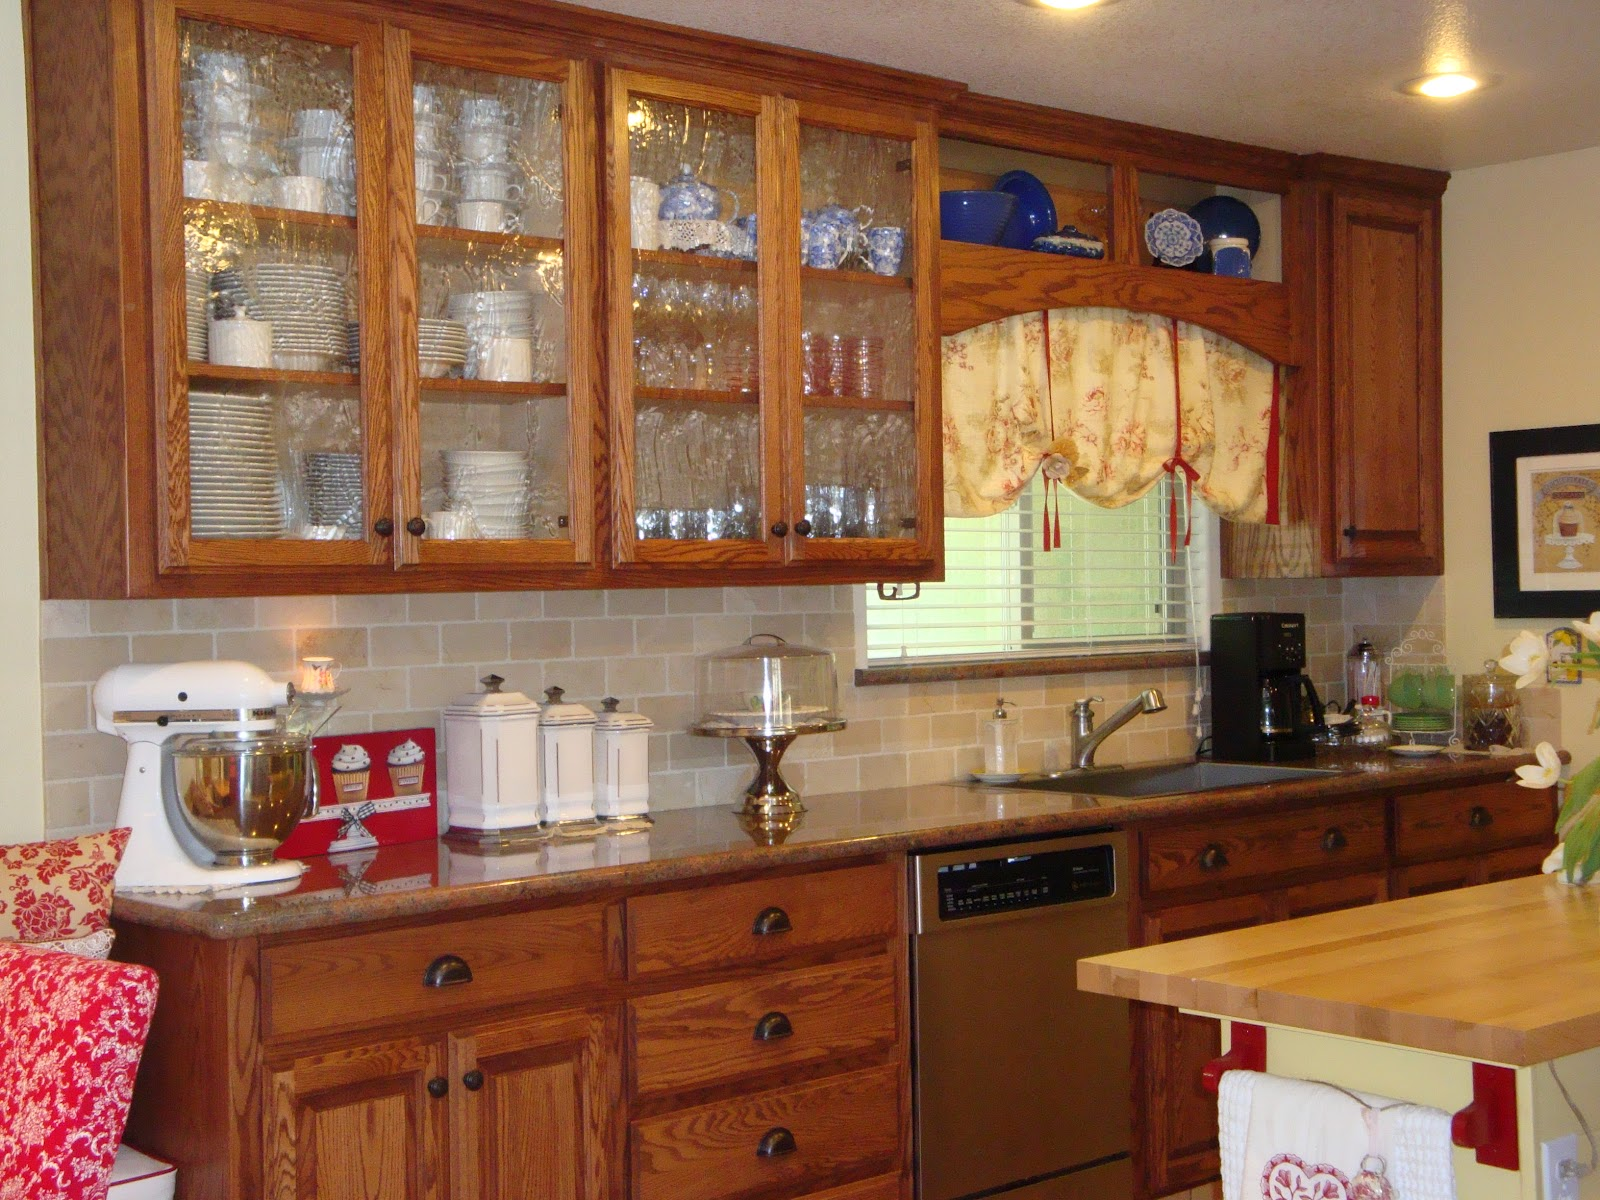 The Astonishing Luxury Wooden Kitchen Cabinets Cherry Wood Image